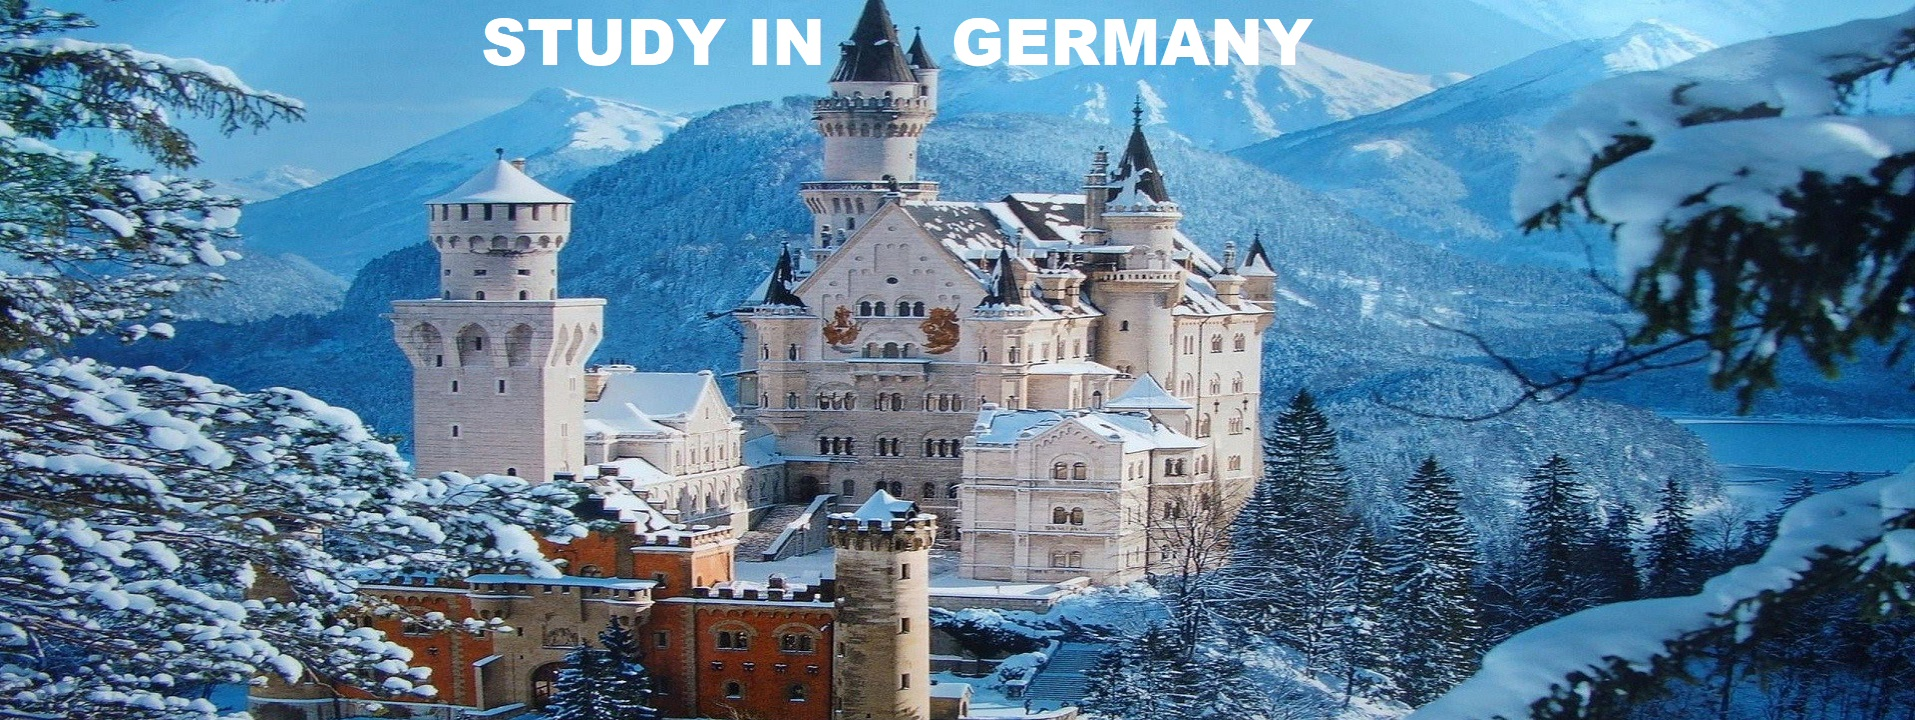 Masters study Germany | Study Master Degree Germany | Student Visa Germany | Cost to Study in Germany | Education immigration Consultants Germany | study in Germany for Indian students | Cost to Study in Germany | study in Germany requirements | study masters in Germany | Study a Master Degree in Germany